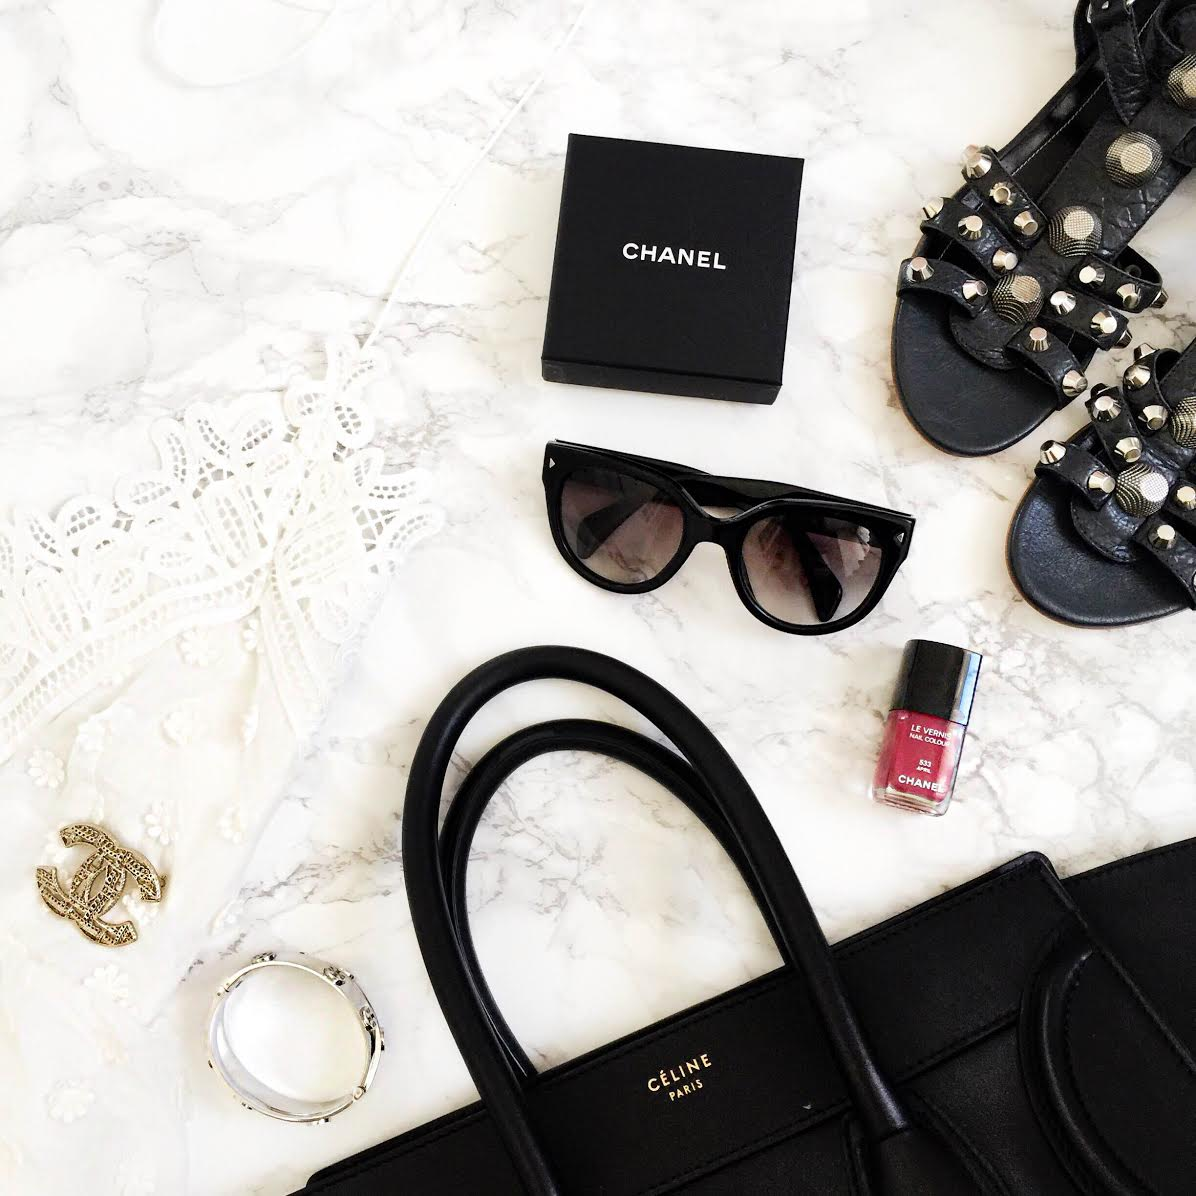 outfit-details-black-white-celine-luggage-chanel-brooch-selfportrait-lace-dress